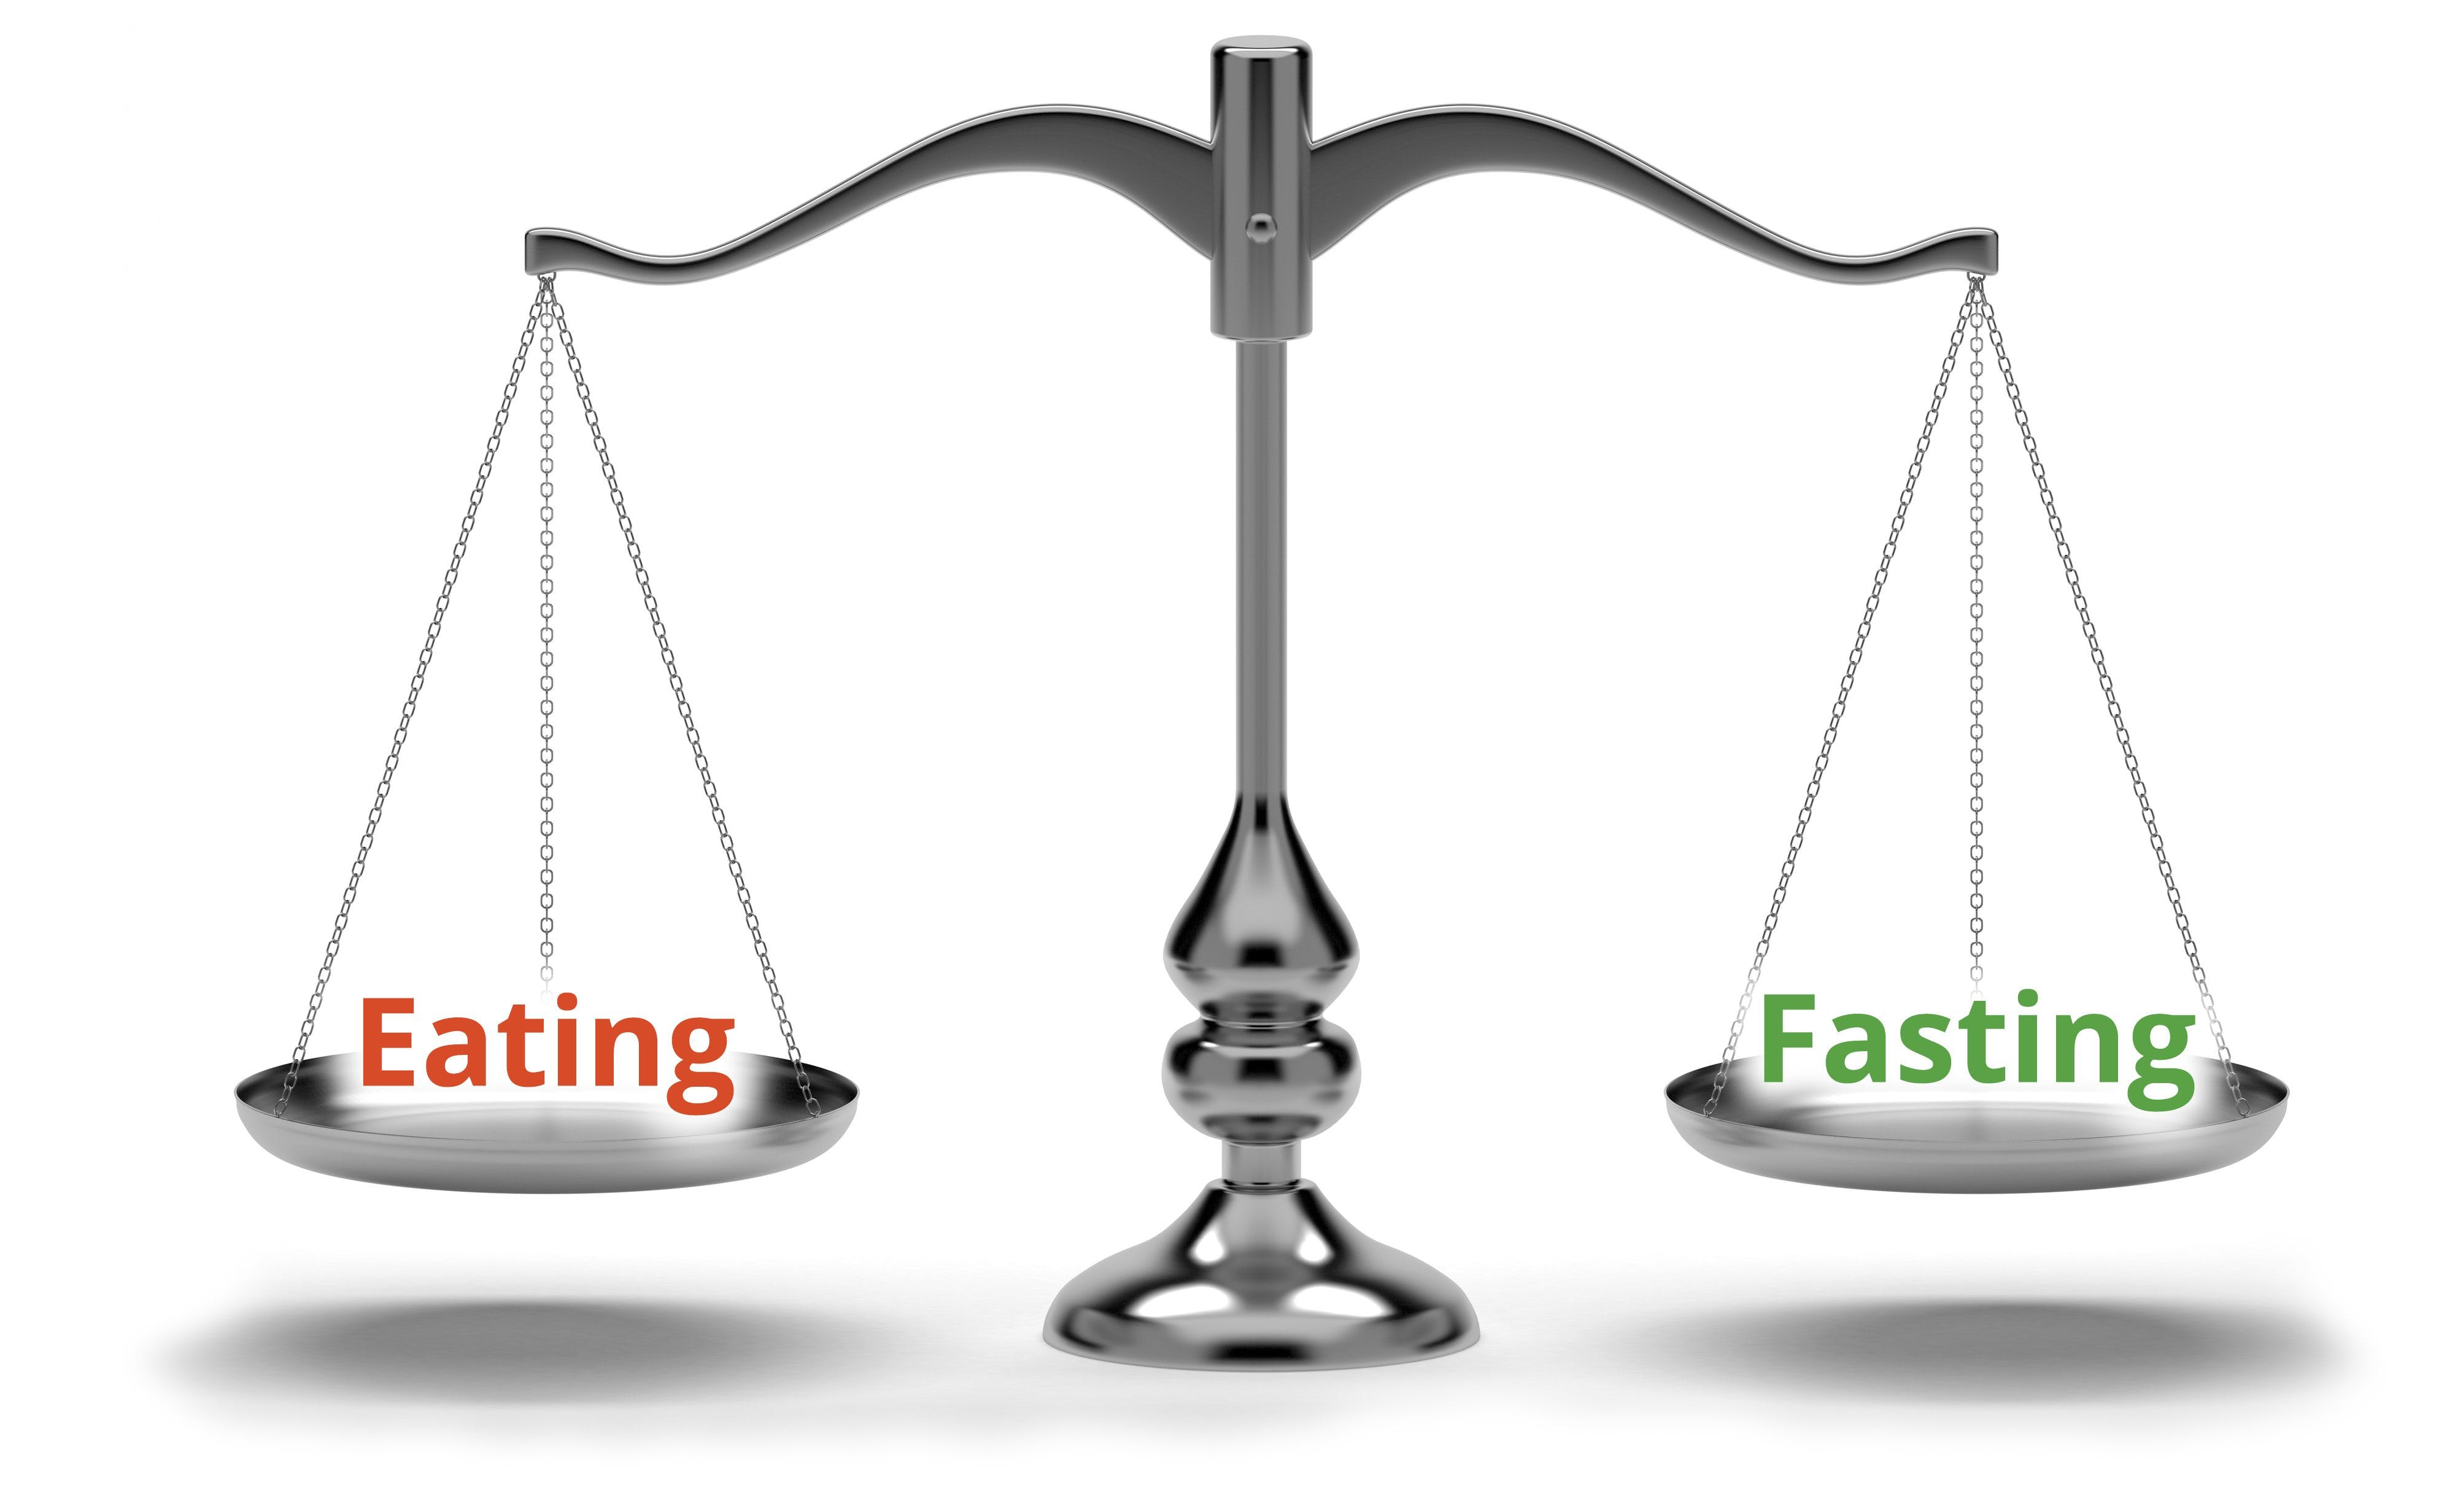 Balancing eating and fasting